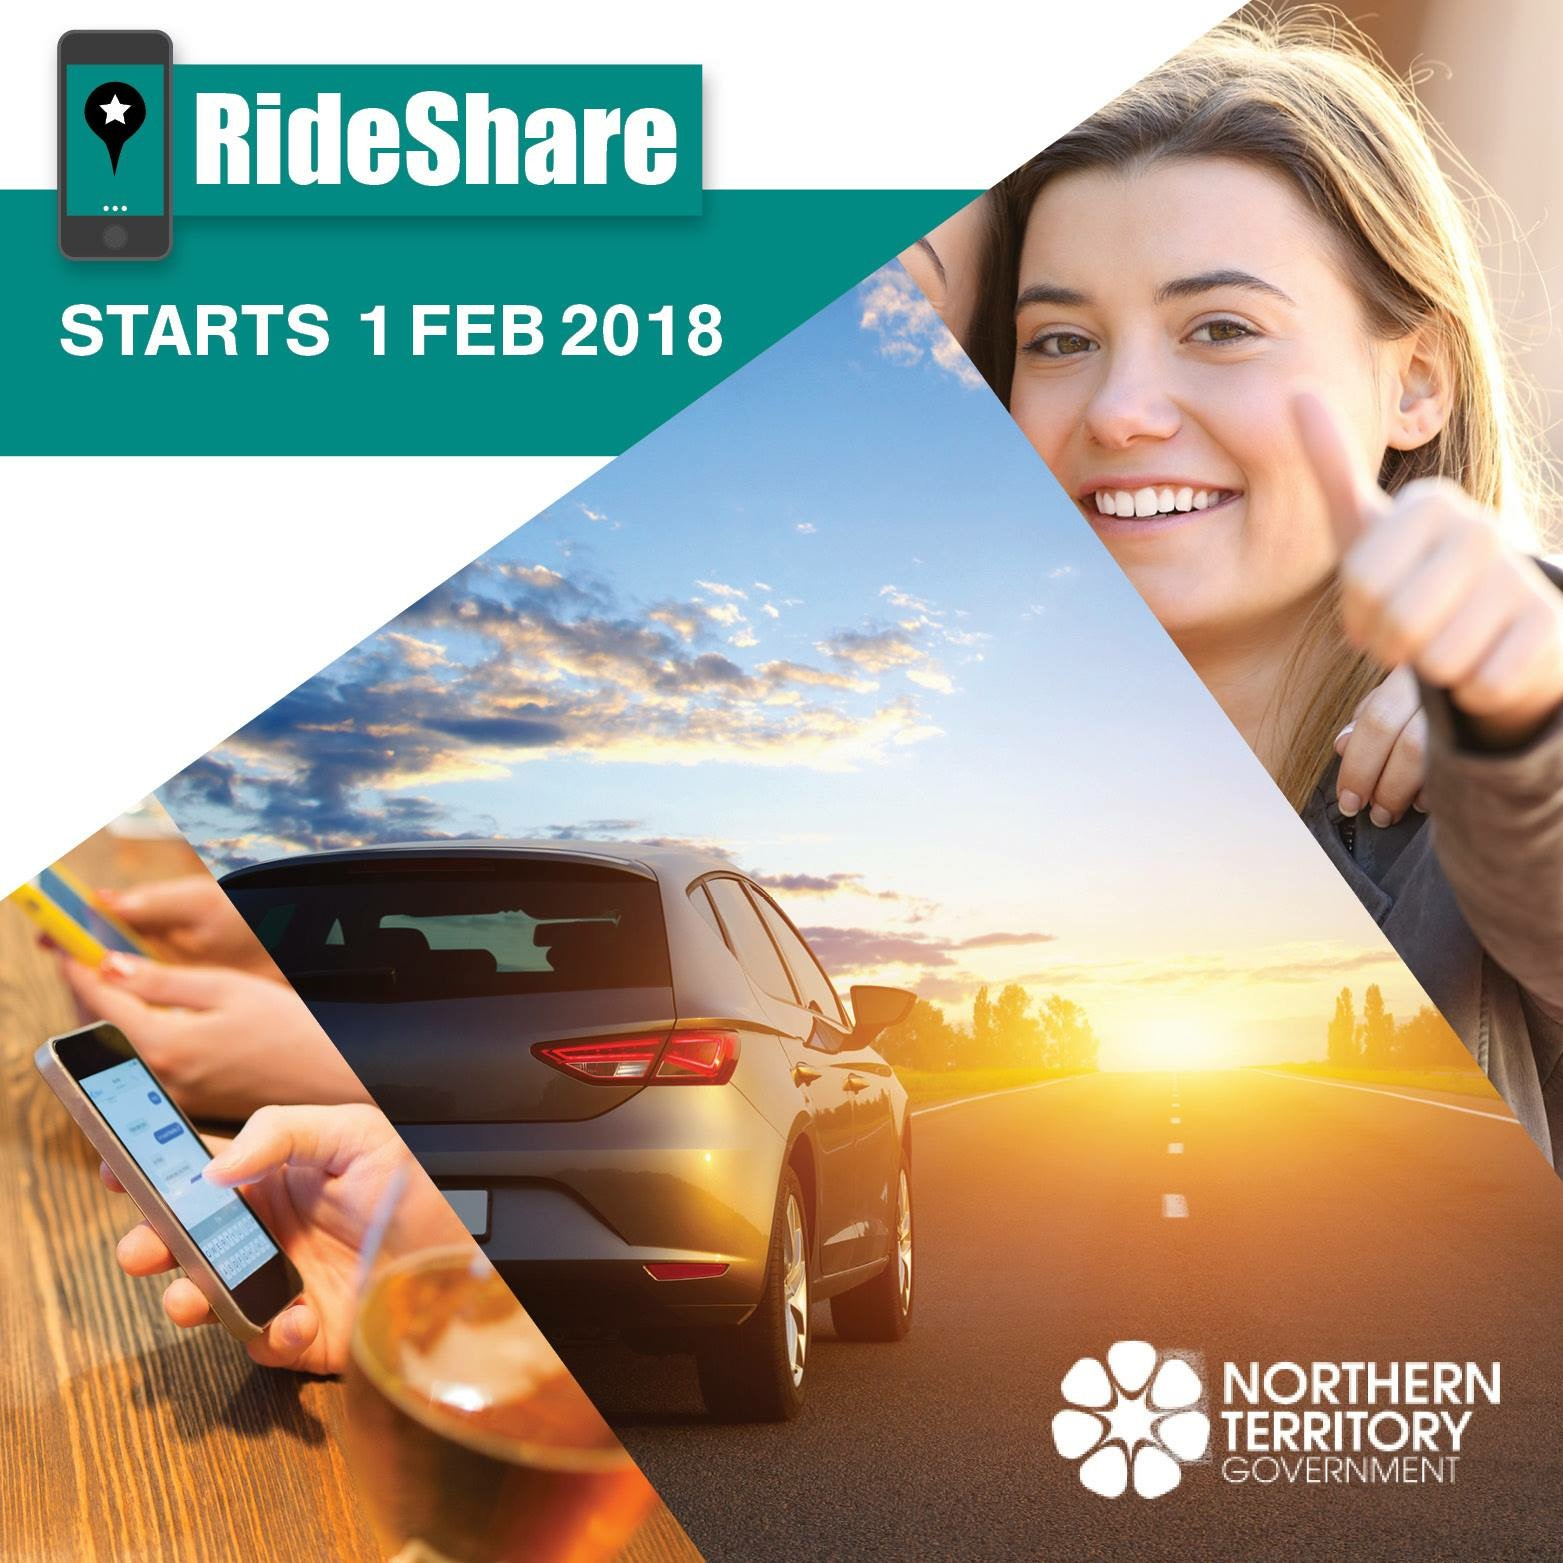 Rideshare Announcement